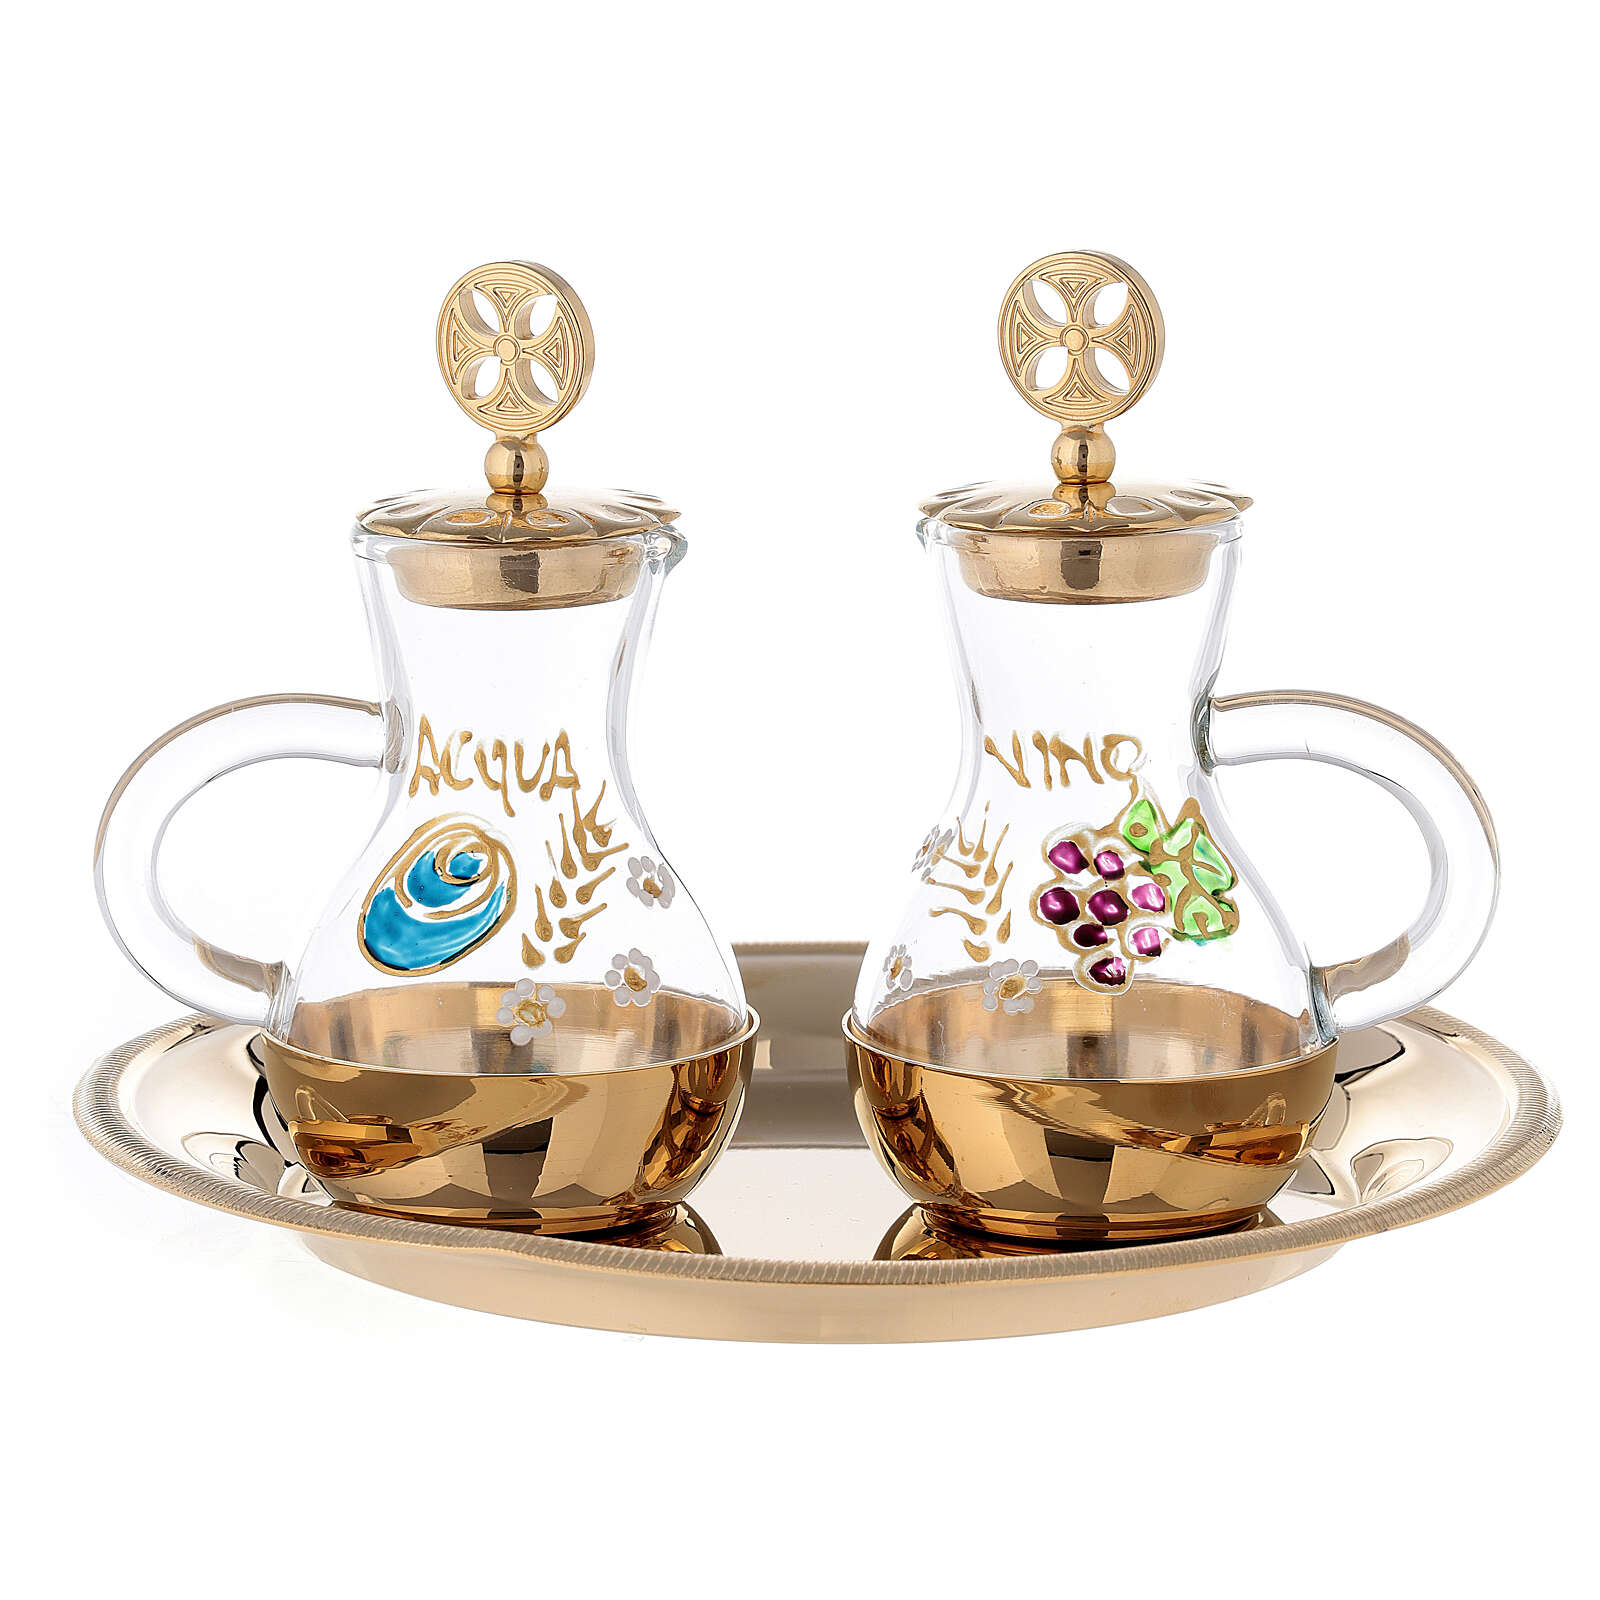 Set of Parma cruets in 24-karat gold plated brass 75 ml 4